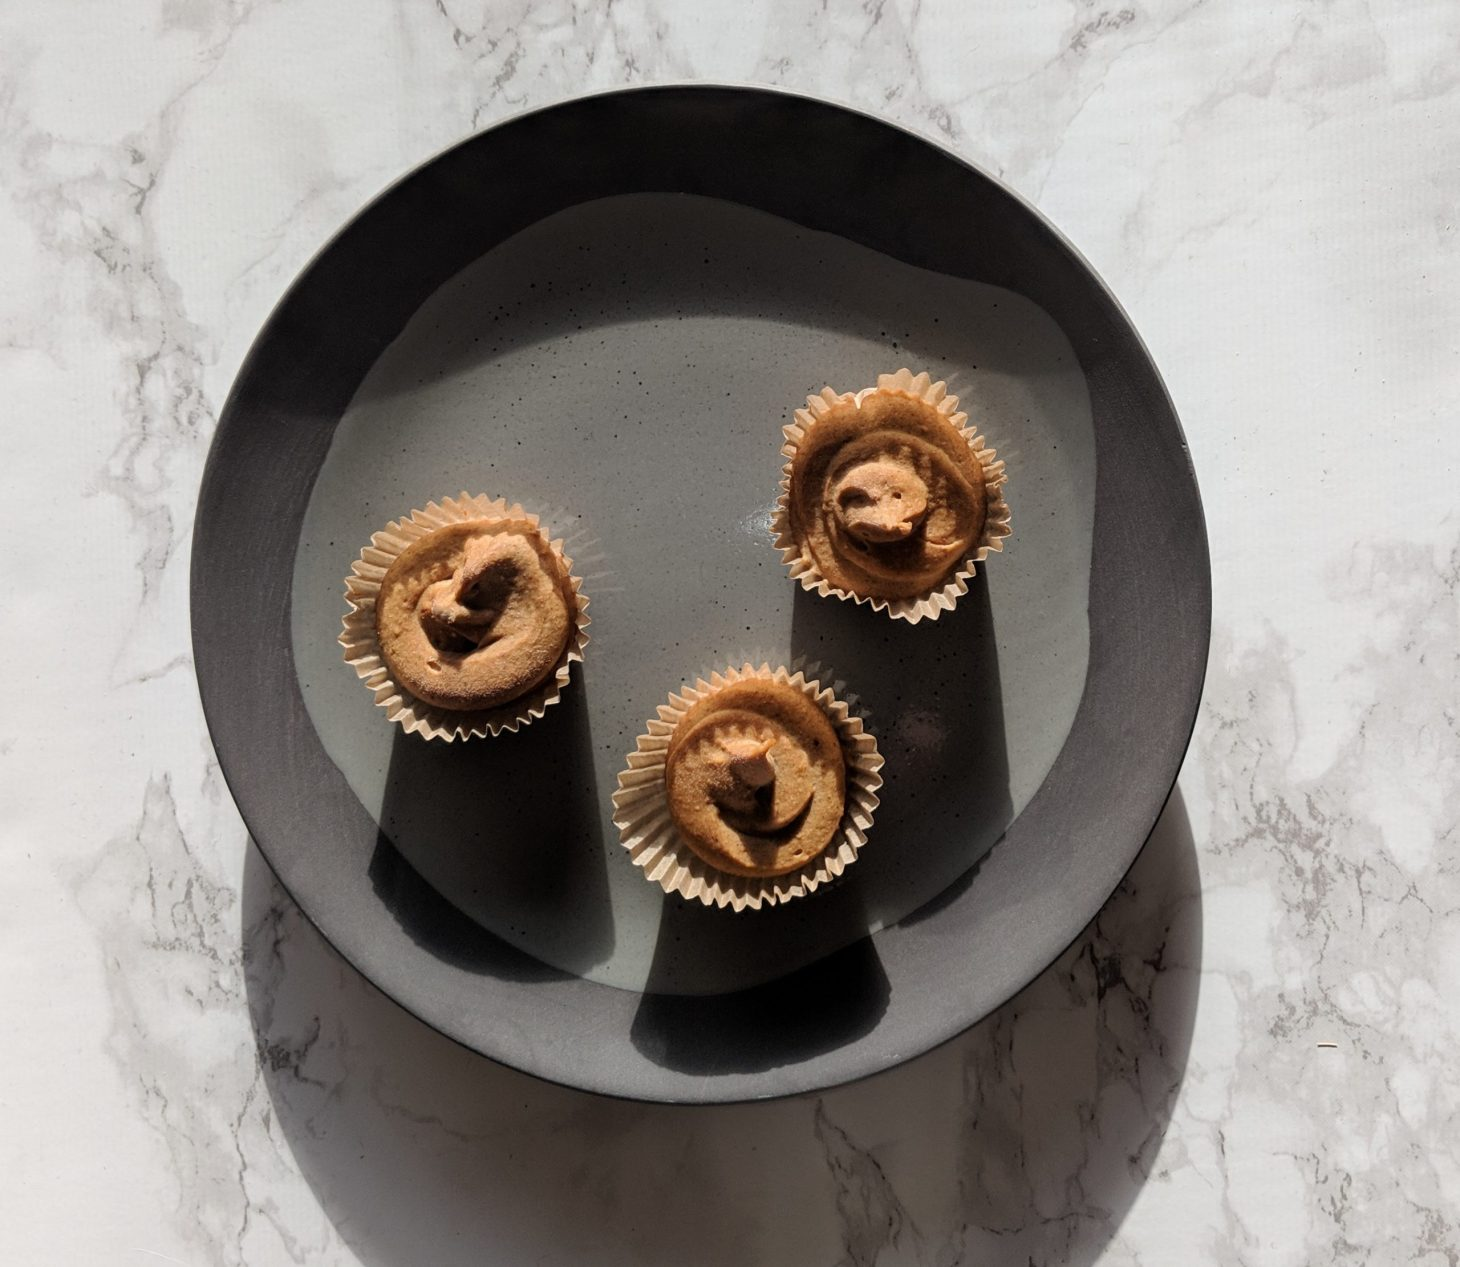 An overhead shot of a gray textured plate featuring three mini pumpkin cheesecake bites on a white marble background. The light is coming from the top of the image so there is a shadow underneath each of the three mini cheesecakes.